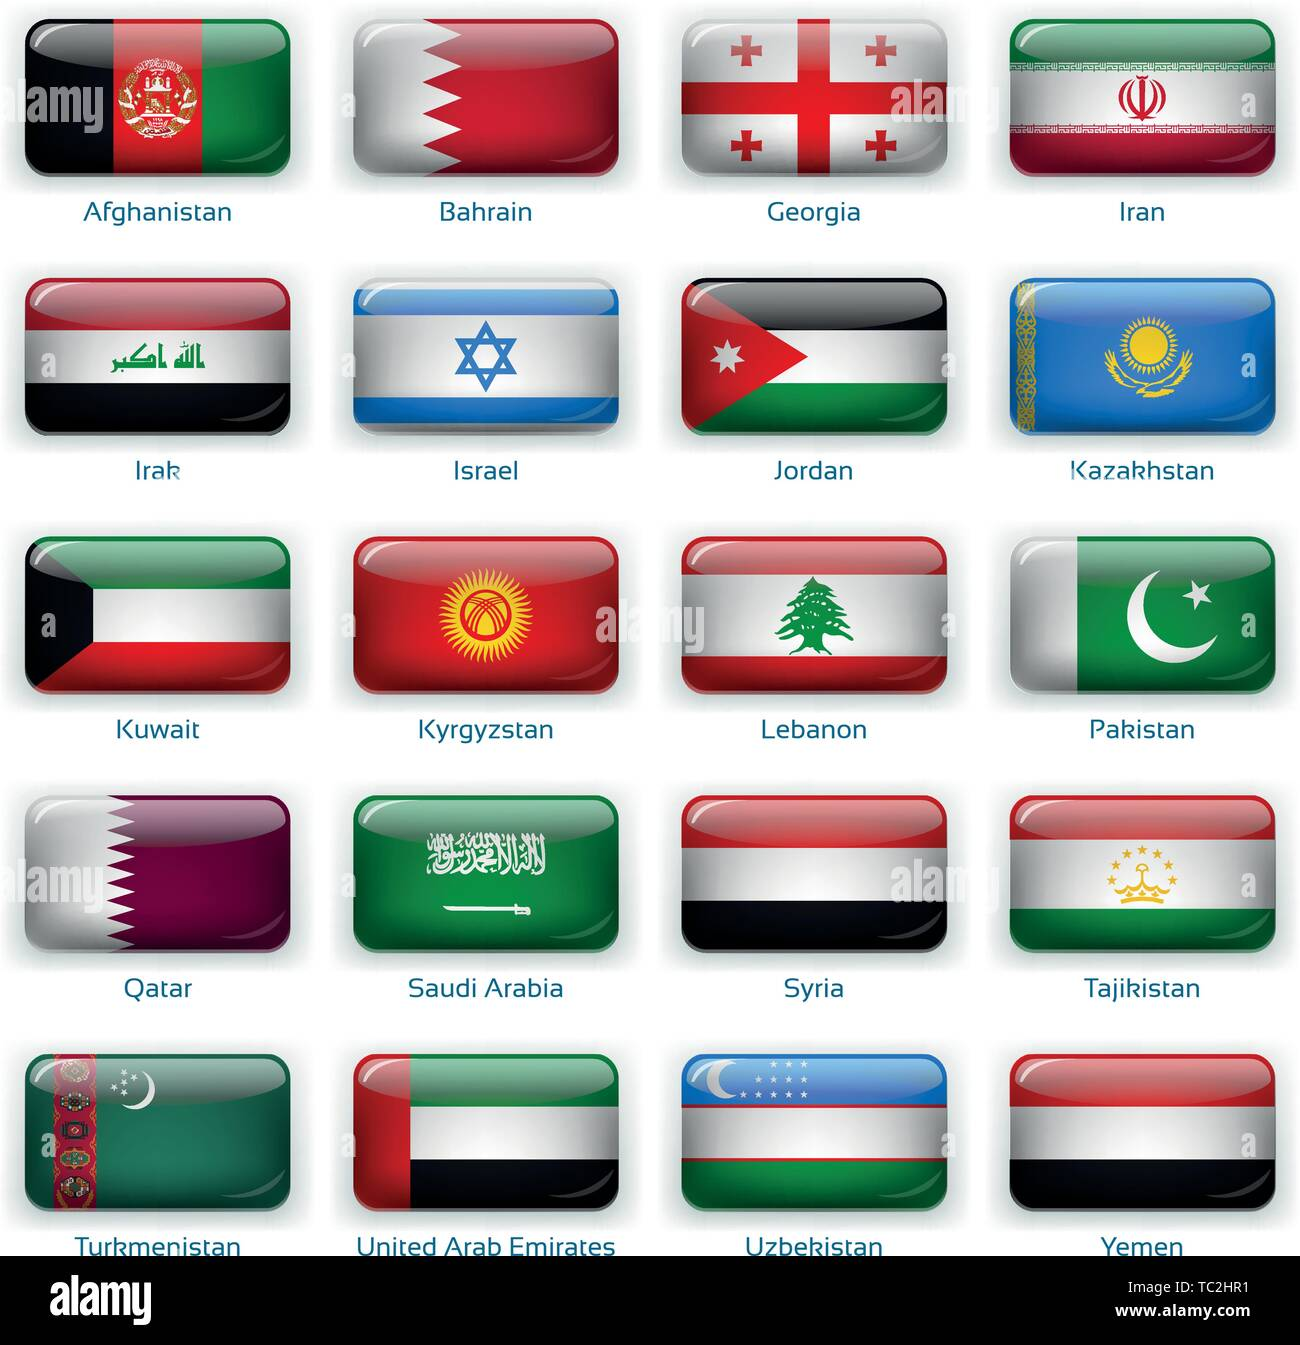 Button flags Western Asia. Vector illustration. 3 layers. Shadows, flat flag you can use it separately, button. Collection of 220 world flags. Accurate colors. Easy changes. - Stock Vector